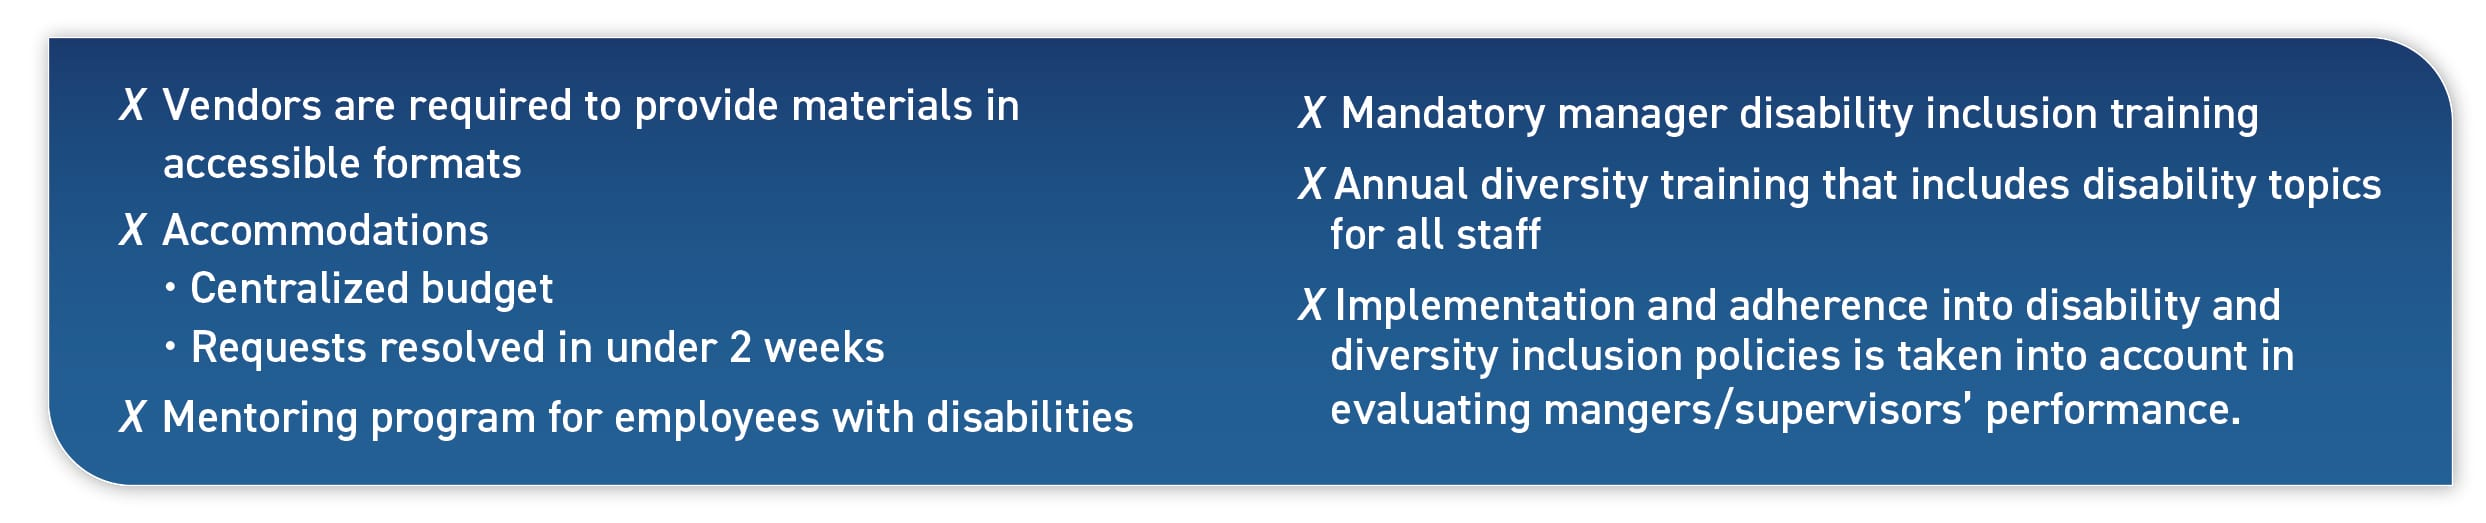 X Vendors are required to provide materials in accessible formats; Accommodations: Centralized budget, Requests resolved in under 2 weeks; Mentoring program for employees with disabilities; Mandatory manager disability inclusion training; Implementation and adherence into disability and diversity inclusion policies is taken into account in evaluating mangers/supervisors' performance.